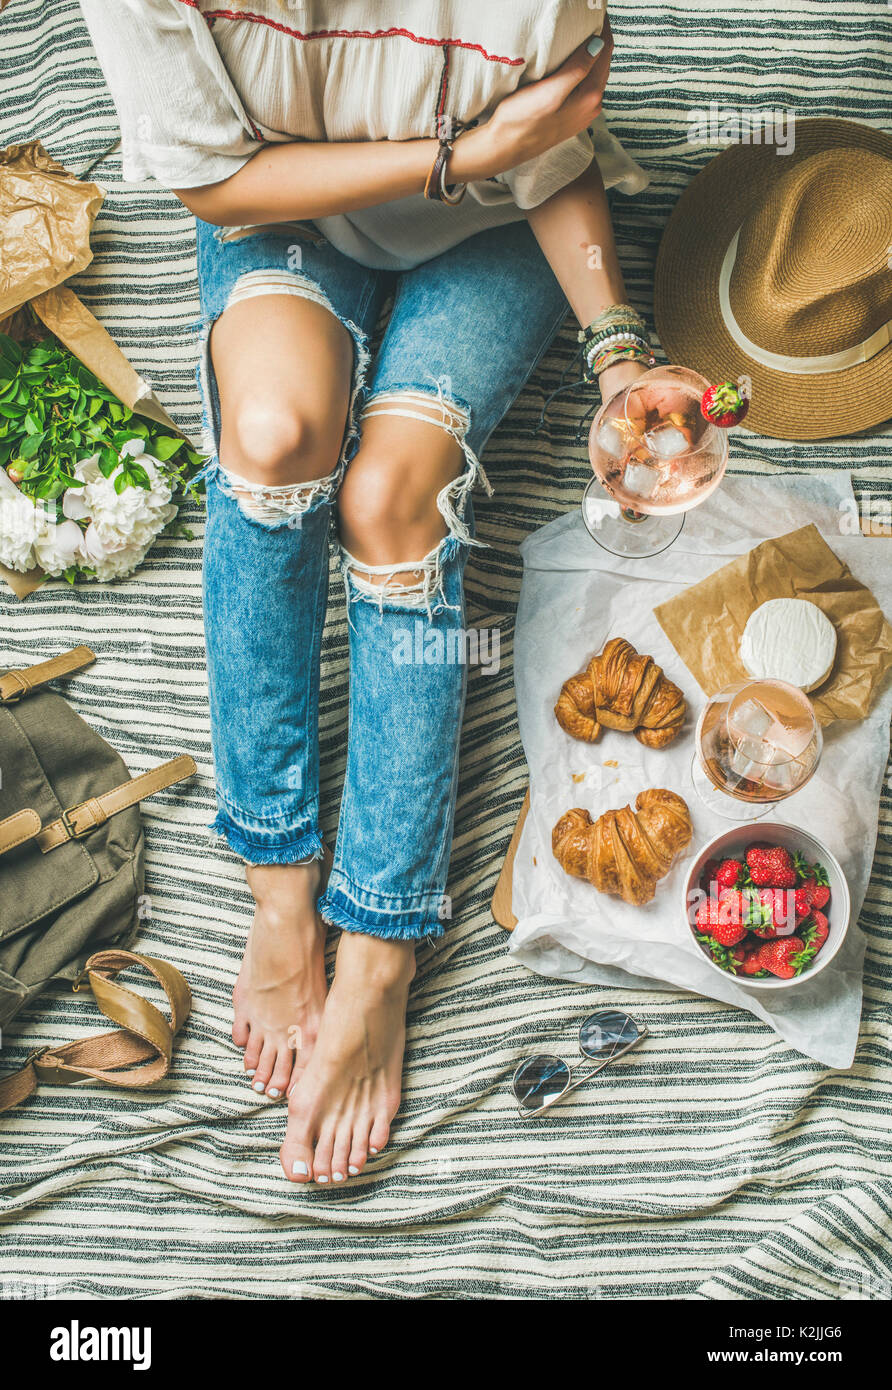 French style romantic picnic setting. Woman in denim pants sits with glass of ice rose wine, strawberries, croissants, brie cheese, hat, sunglasses, p - Stock Image